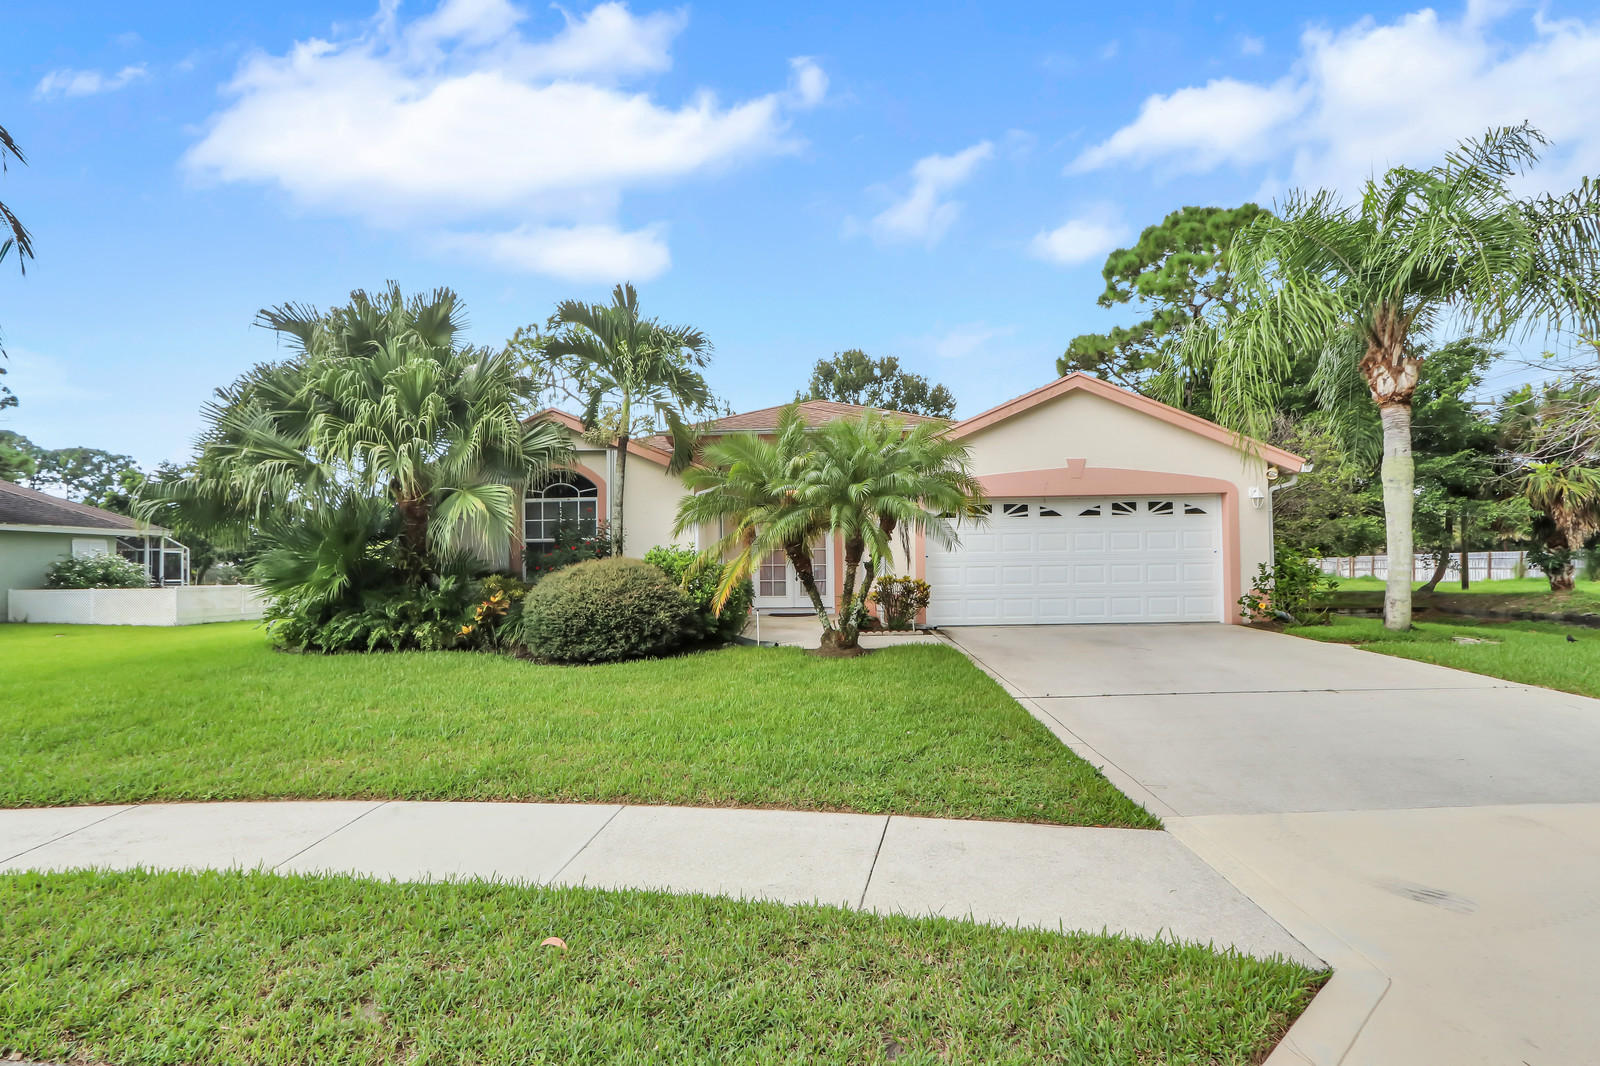 Home for sale in Loxahatchee Pines community, off Roebuck Jupiter Florida